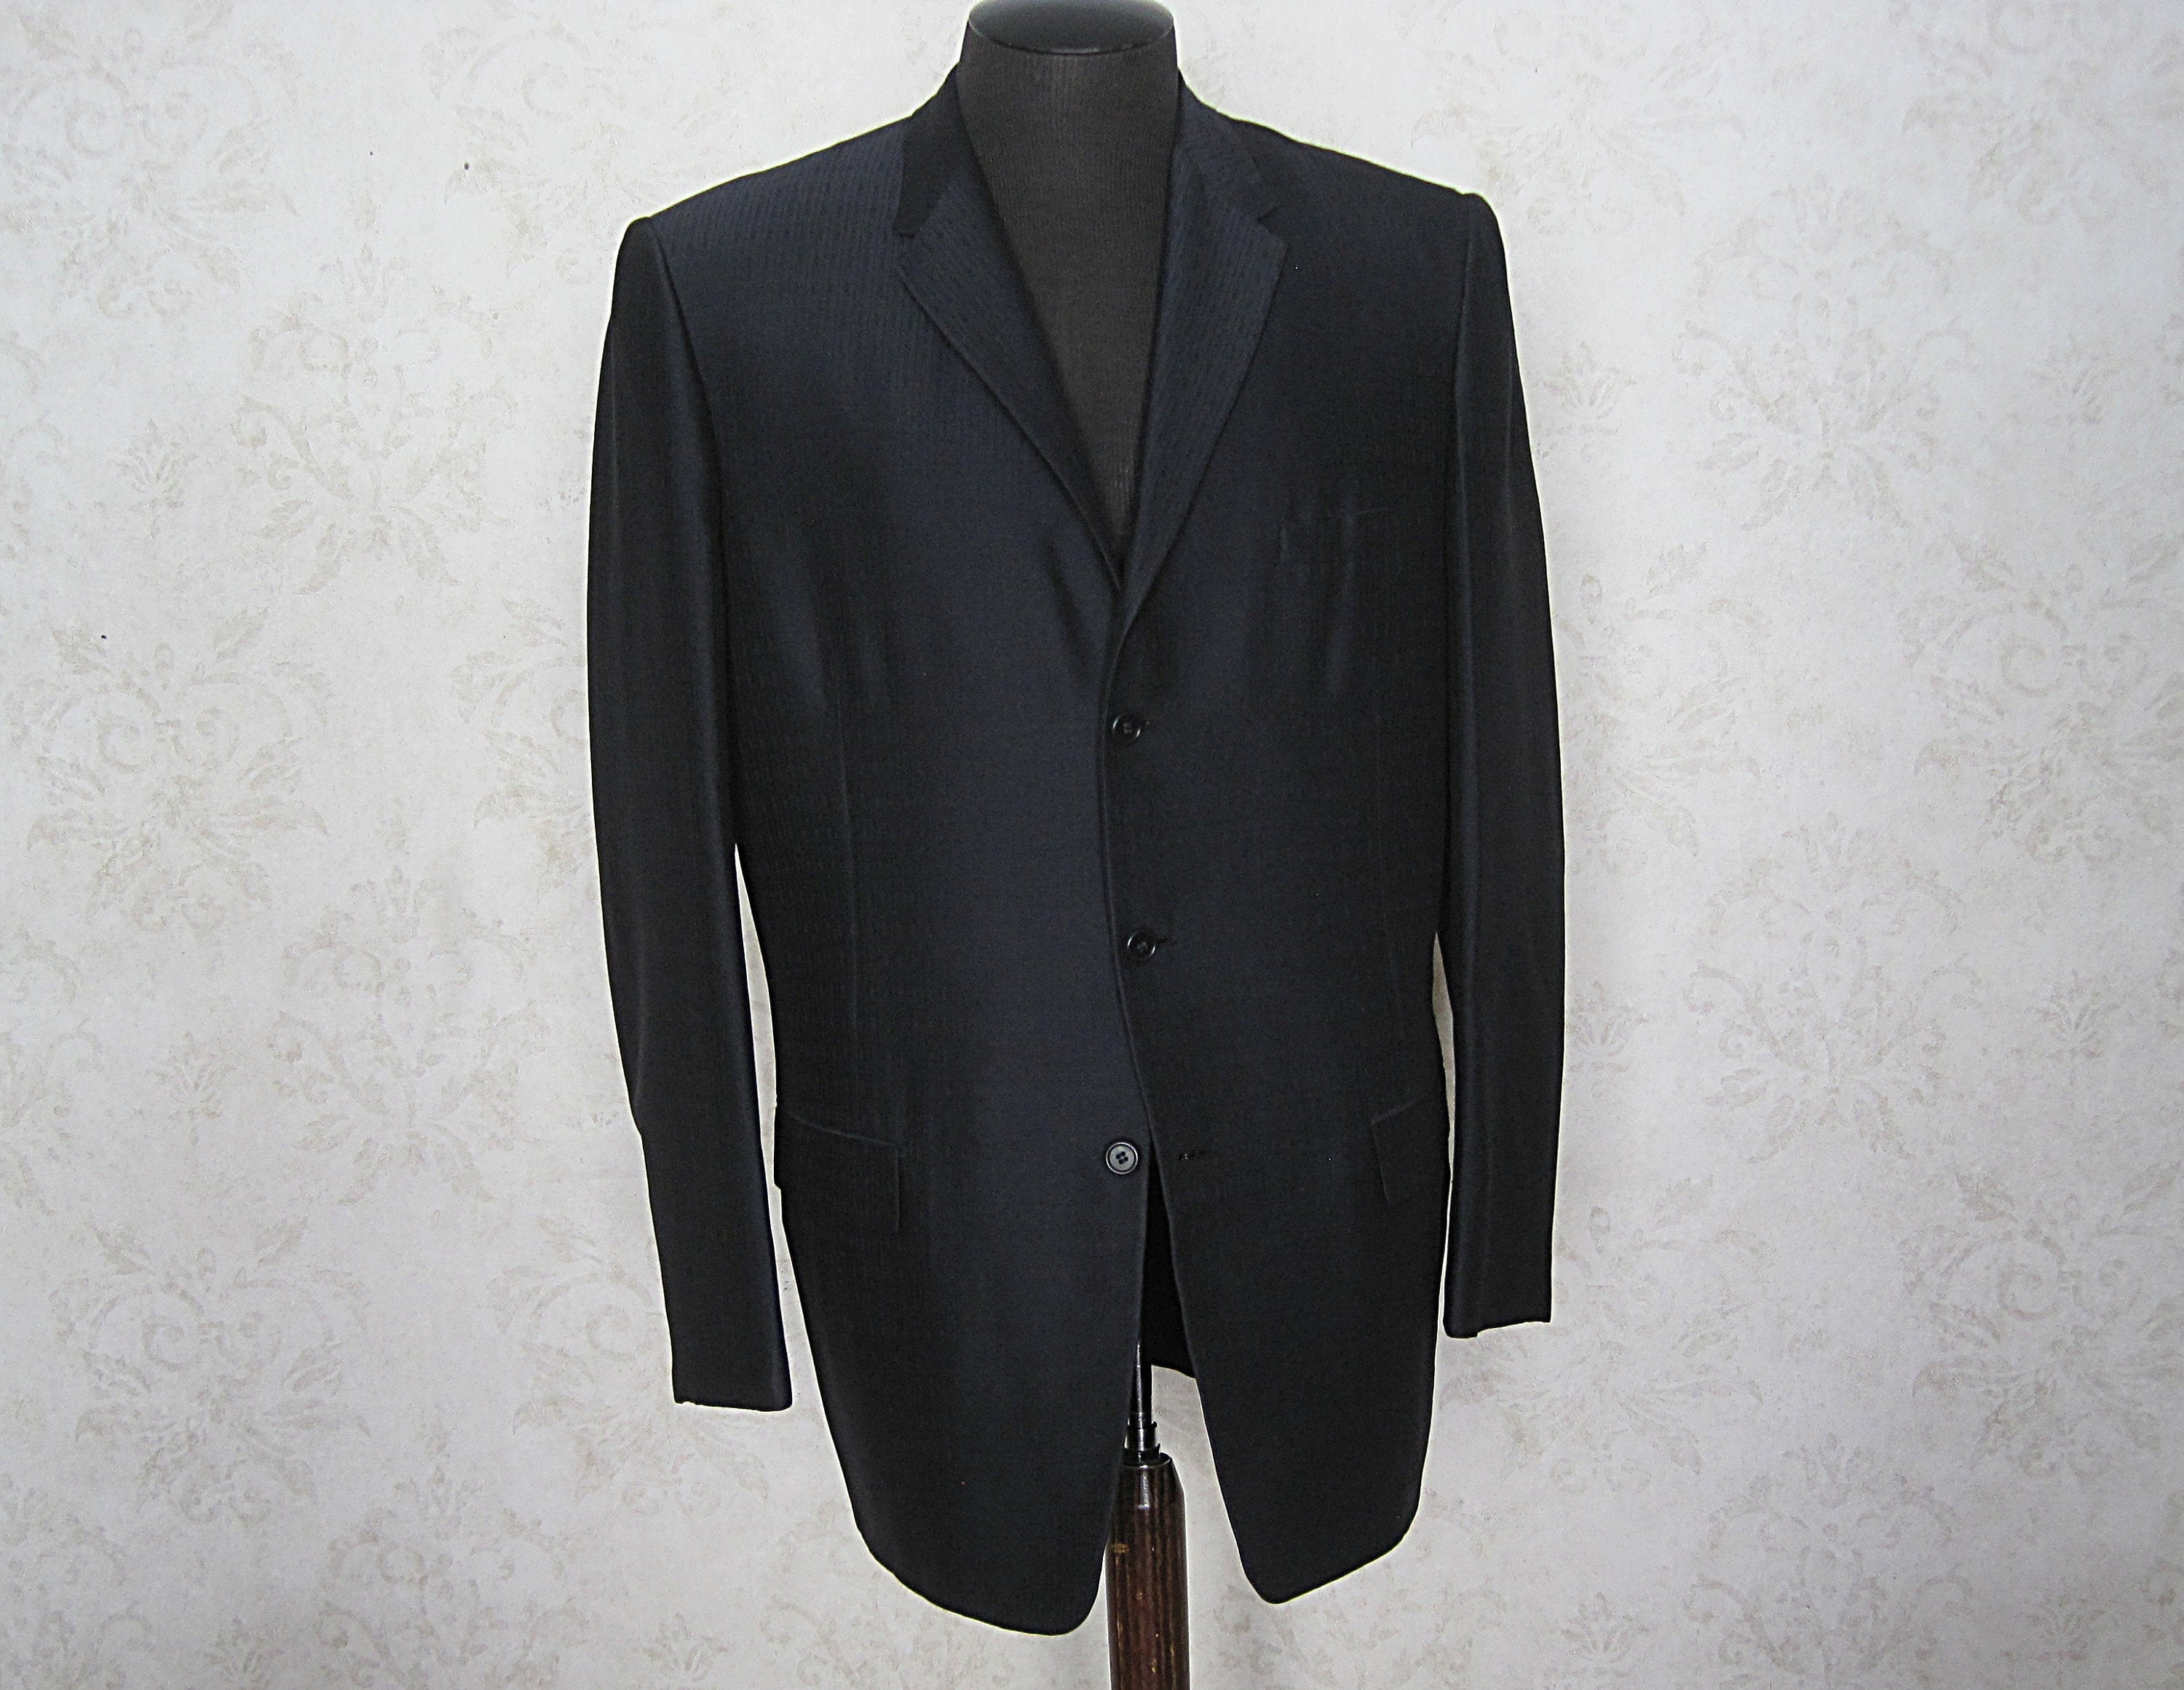 1950s Mens Suits & Sport Coats | 50s Suits & Blazers Vintage 60S Sport CoatTrojan Of Hollywood 1950S 1960S Mens Three Button Suit Jacket Blazer Sportcoat $28.25 AT vintagedancer.com